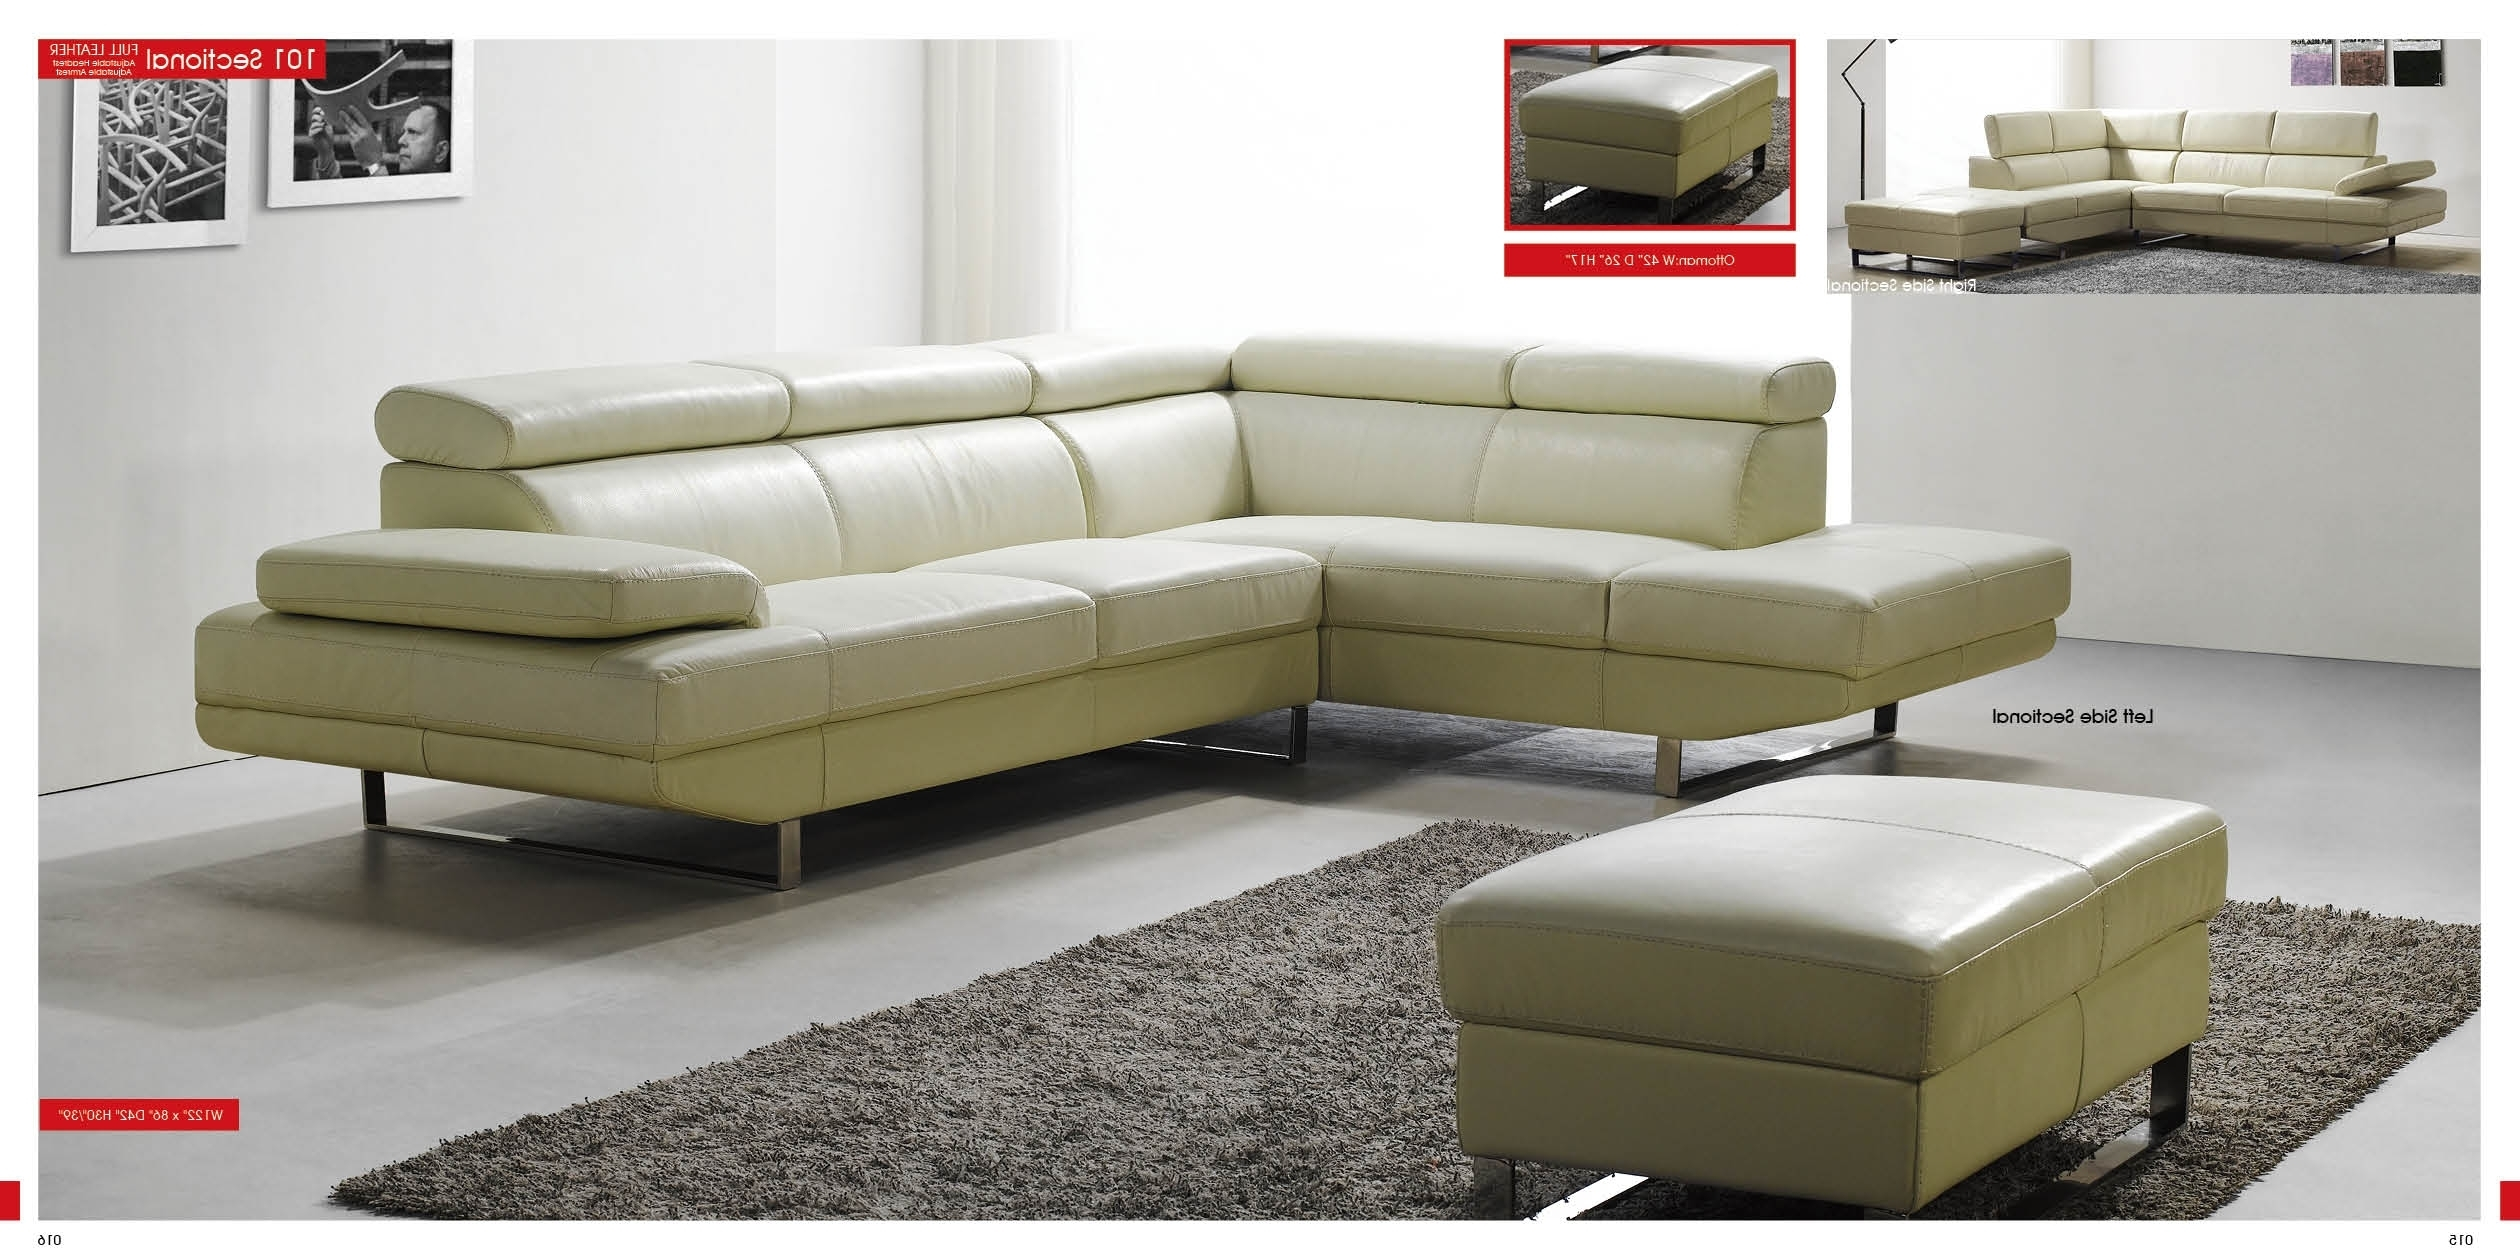 Most Recently Released Sleek Sectional Sofas Throughout Collection Sleek Sectional Sofa – Mediasupload (View 7 of 15)